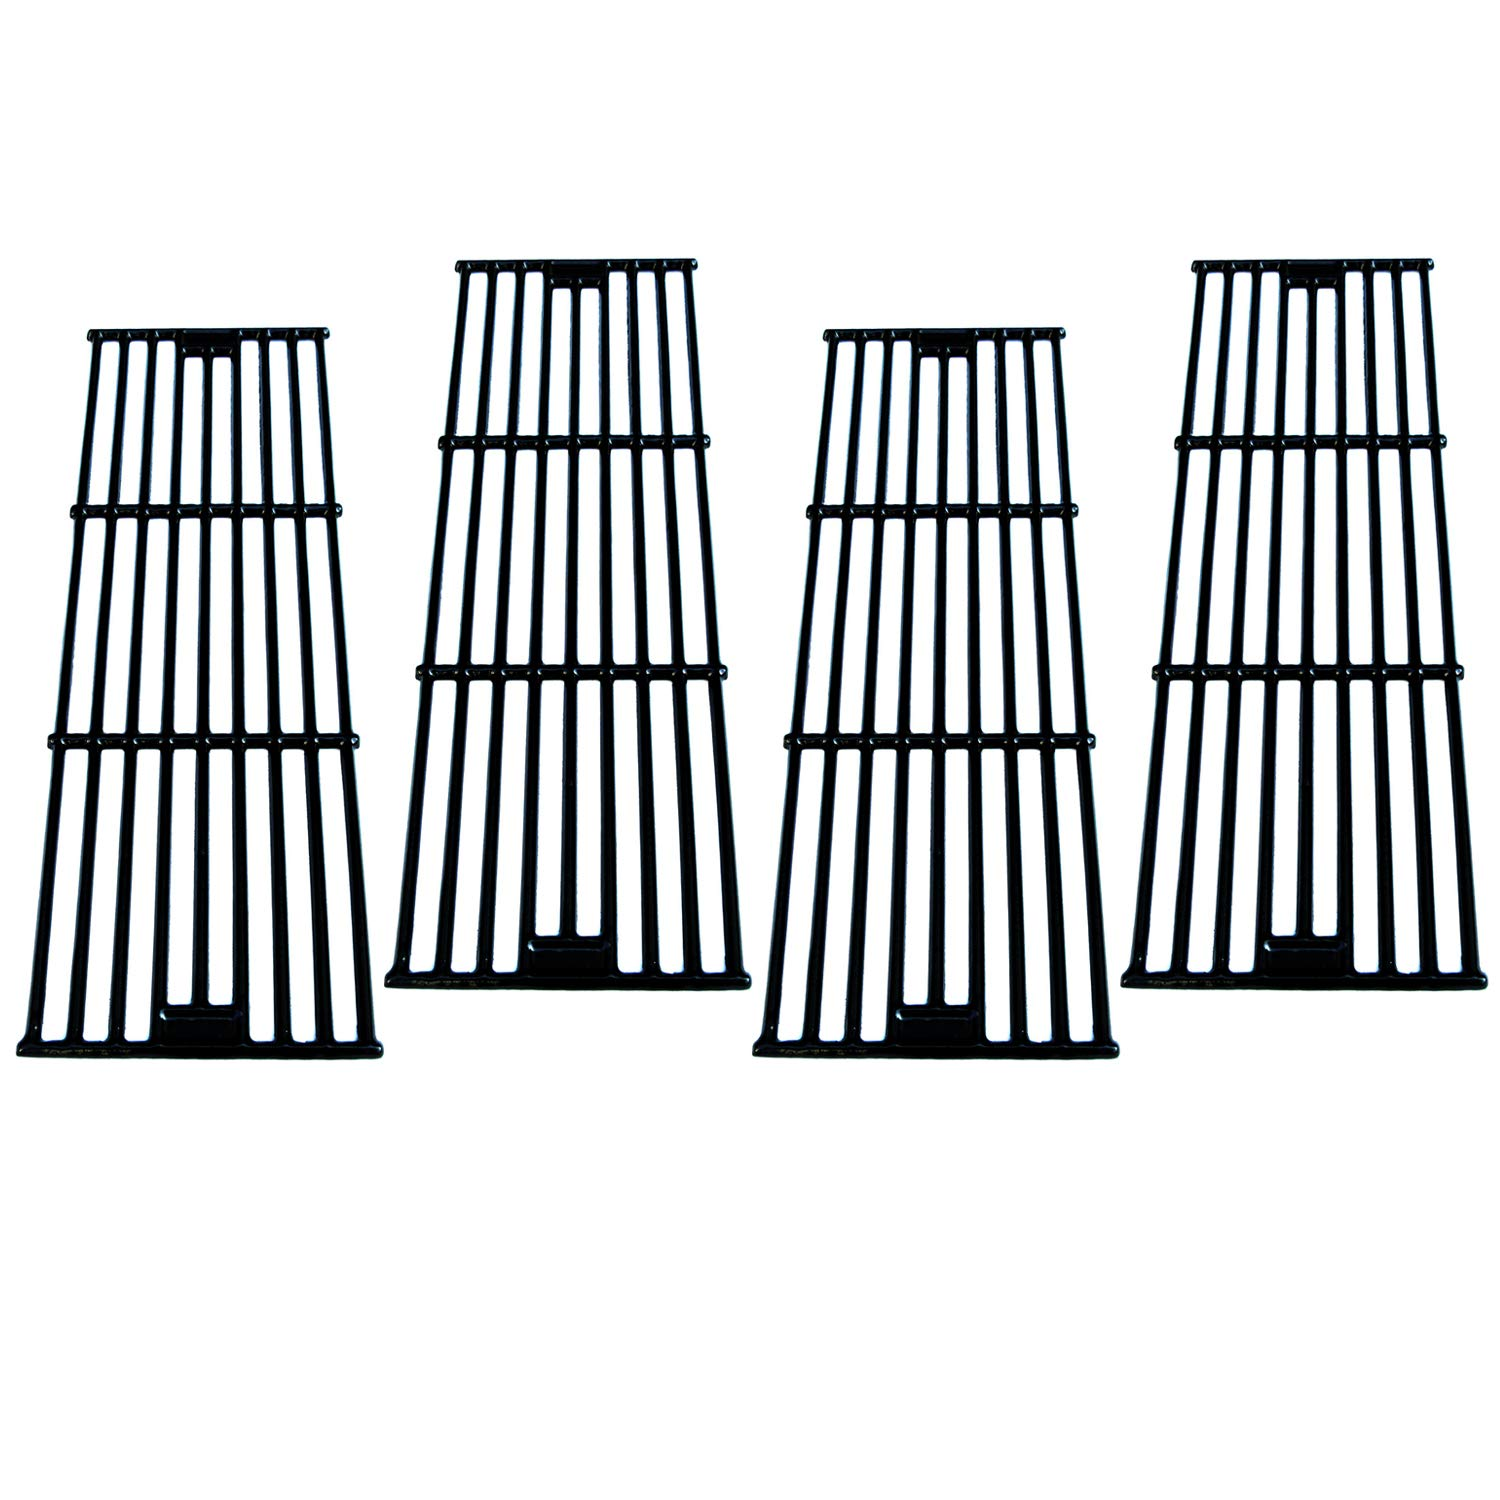 Direct Store Parts DC114 (4-Pack) Polished Porcelain Coated Cast Iron Cooking Grid Replacement Chargriller, King Griller Gas Grill (4) by Direct Store